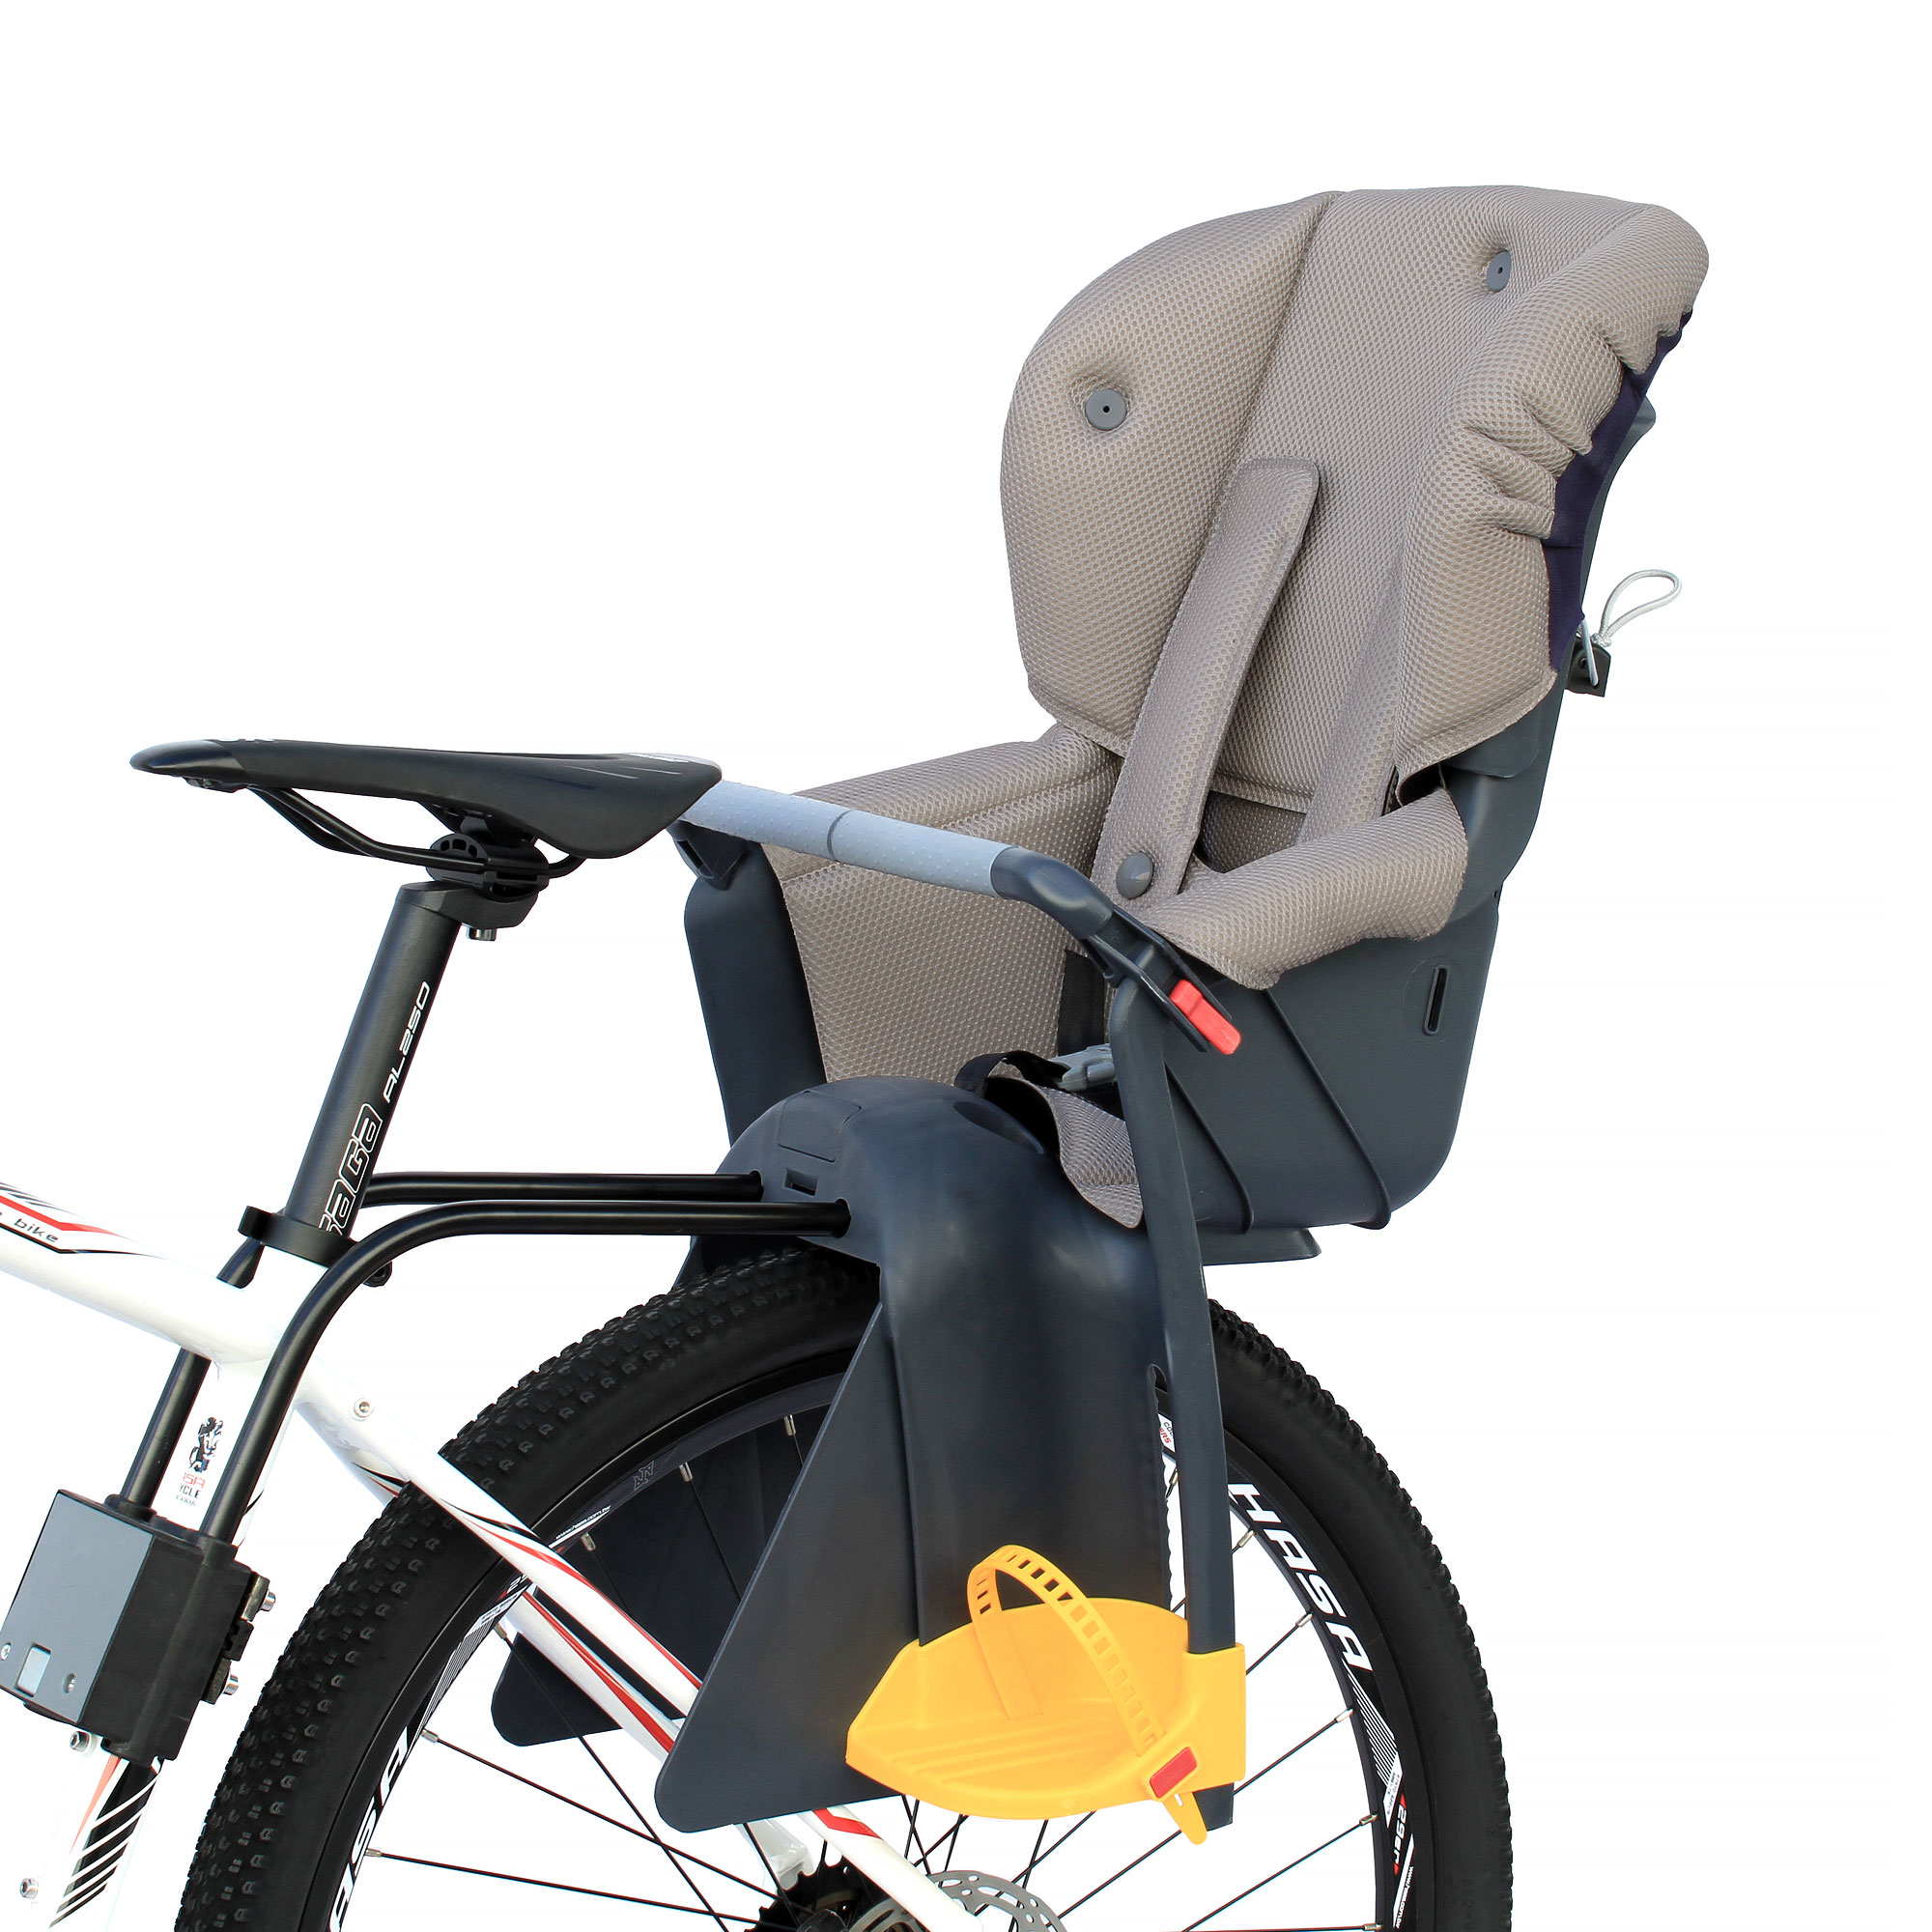 NEW CHILD SEAT Top Tube Bicycle Child Seat For Bike 2020